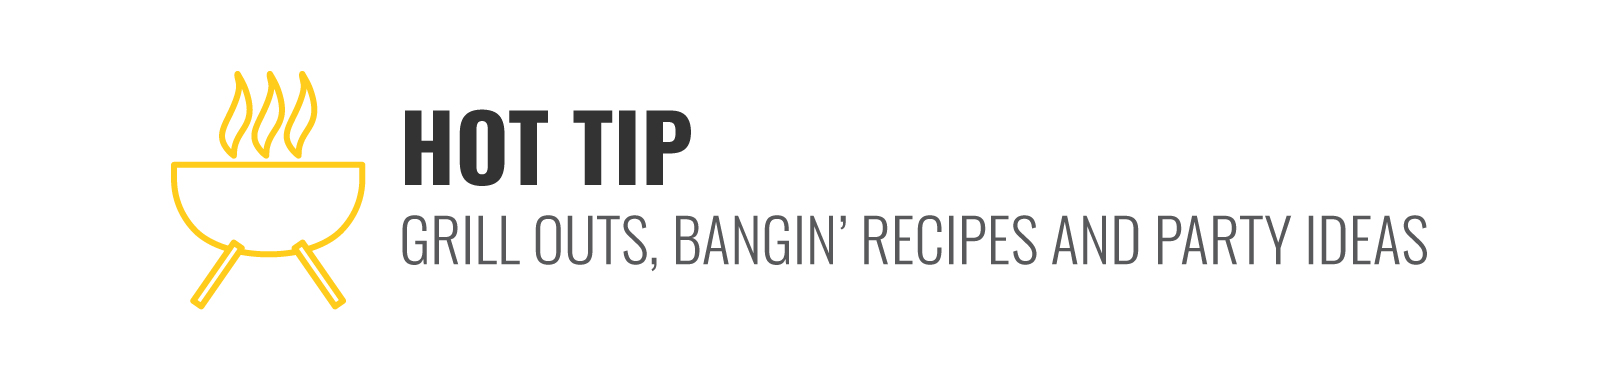 Speaking of grill outs, if you are looking for some bangin' recipes and party ideas, you'll have to head over to our latest blog here!